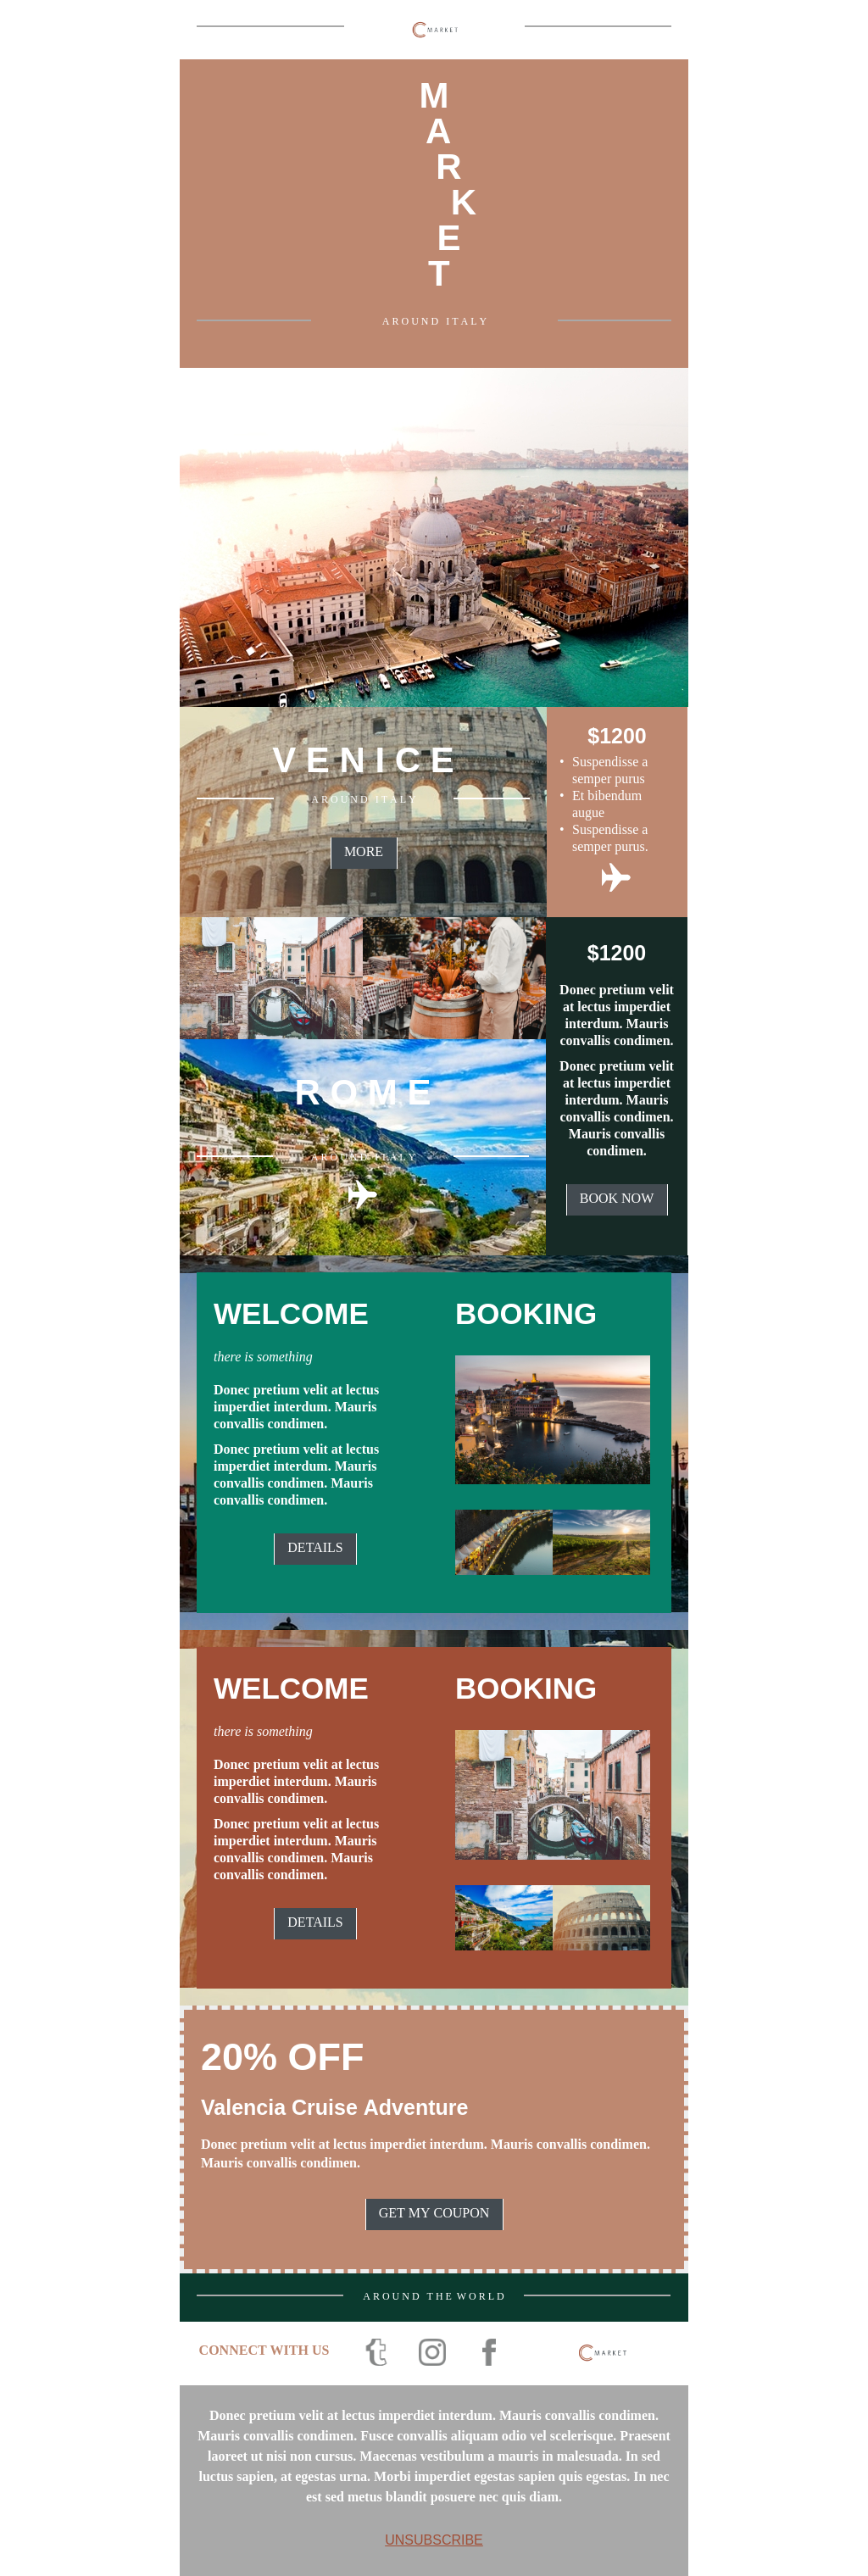 Pastel colored travel template for tourism industry.